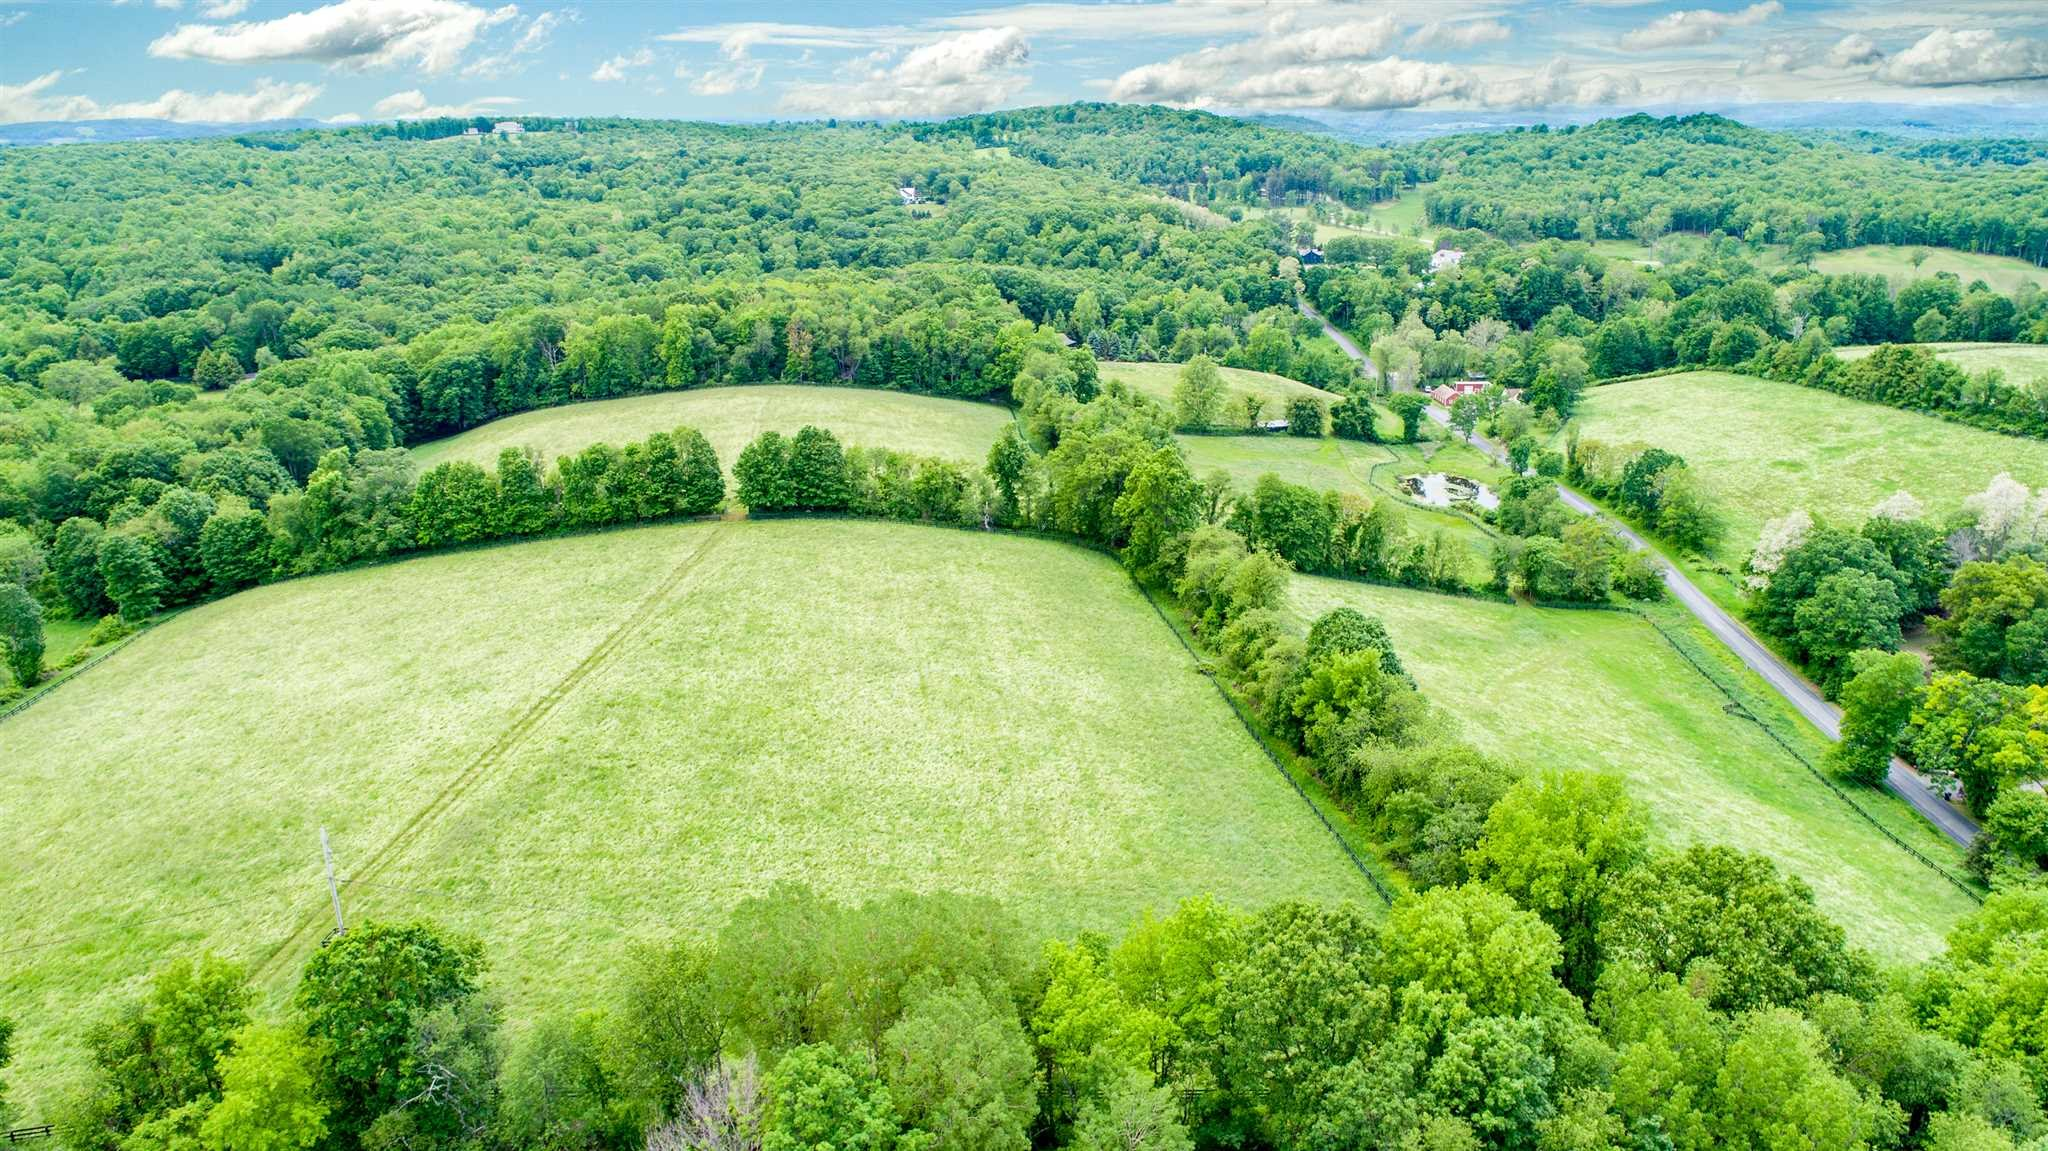 16 LUDLOW WOODS ROAD Stanford, NY 12581 - MLS #: 361662